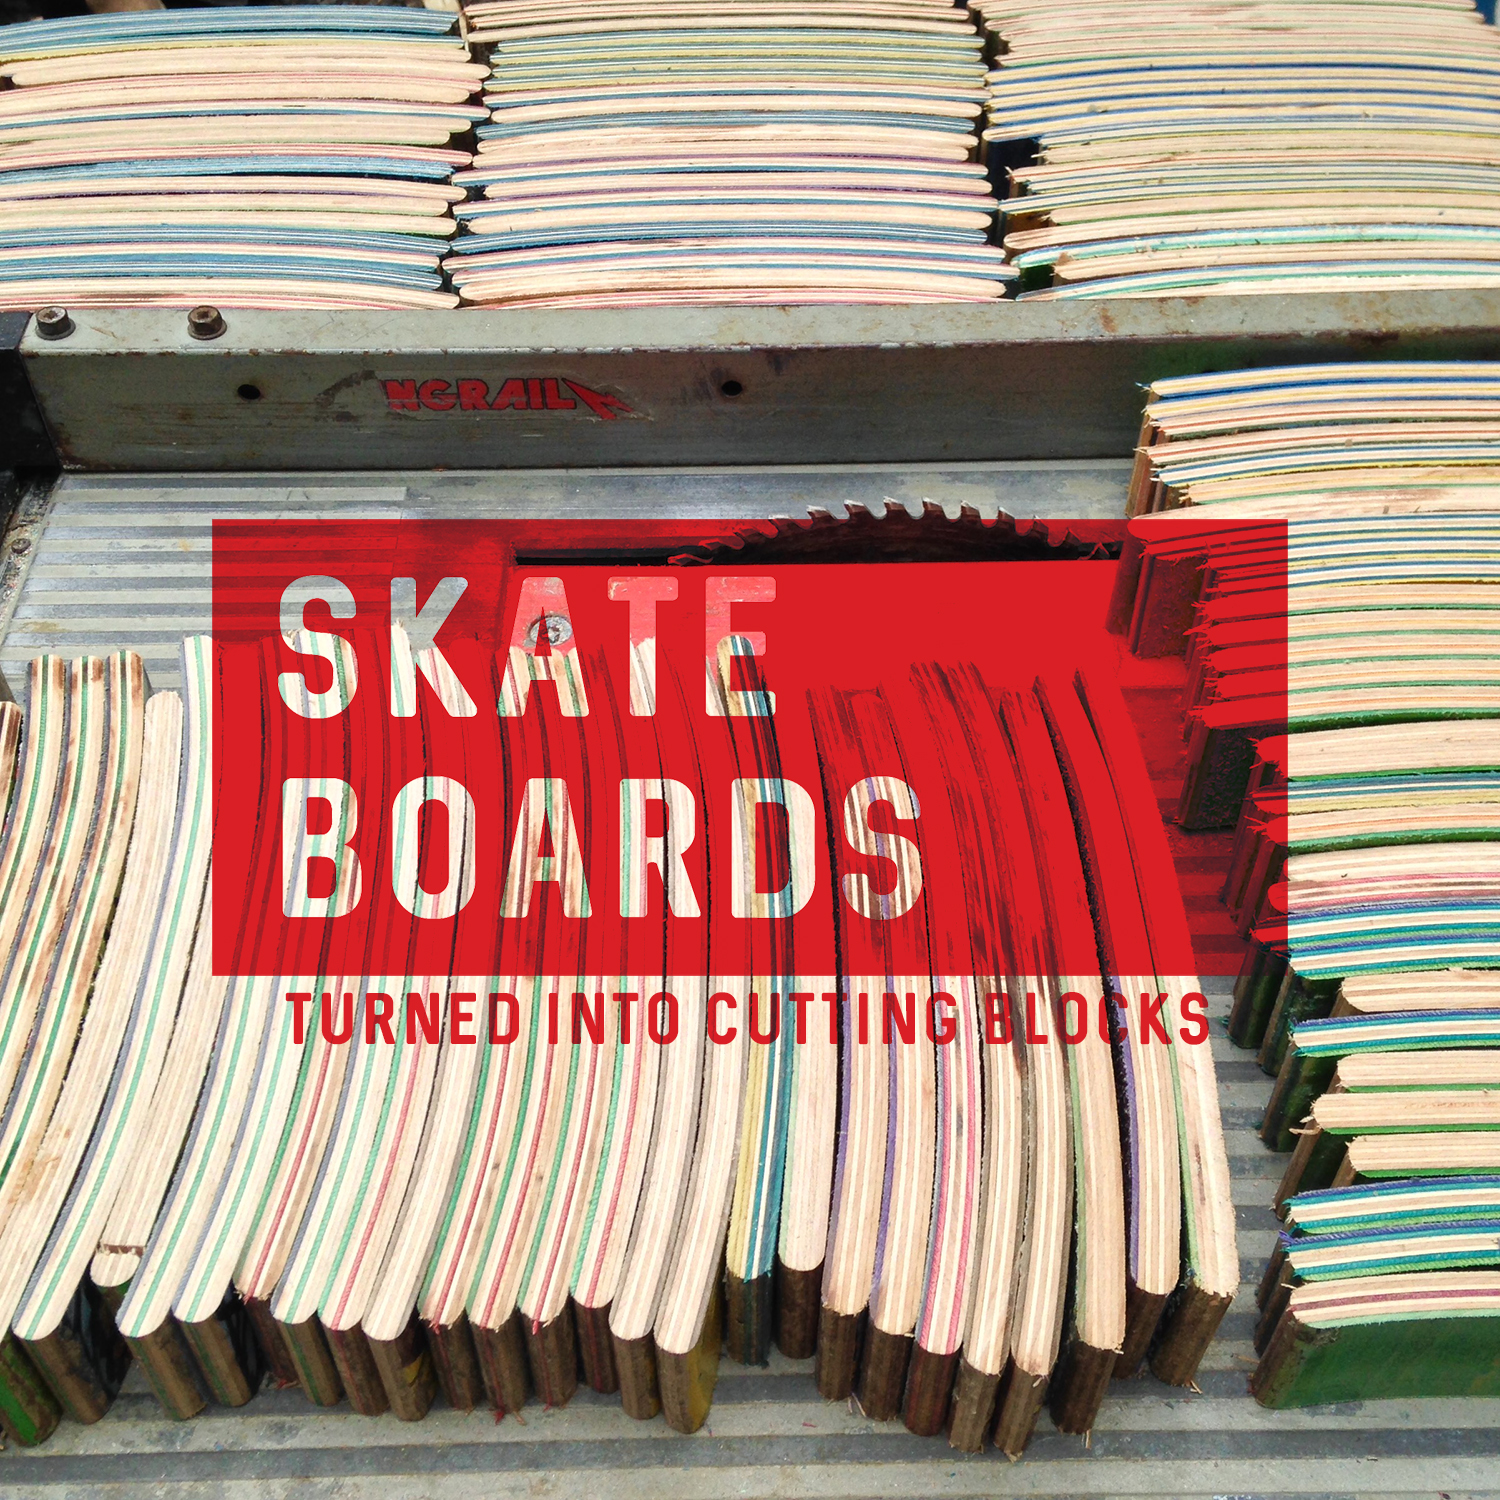 Cutting Blocks made out of old skateboards